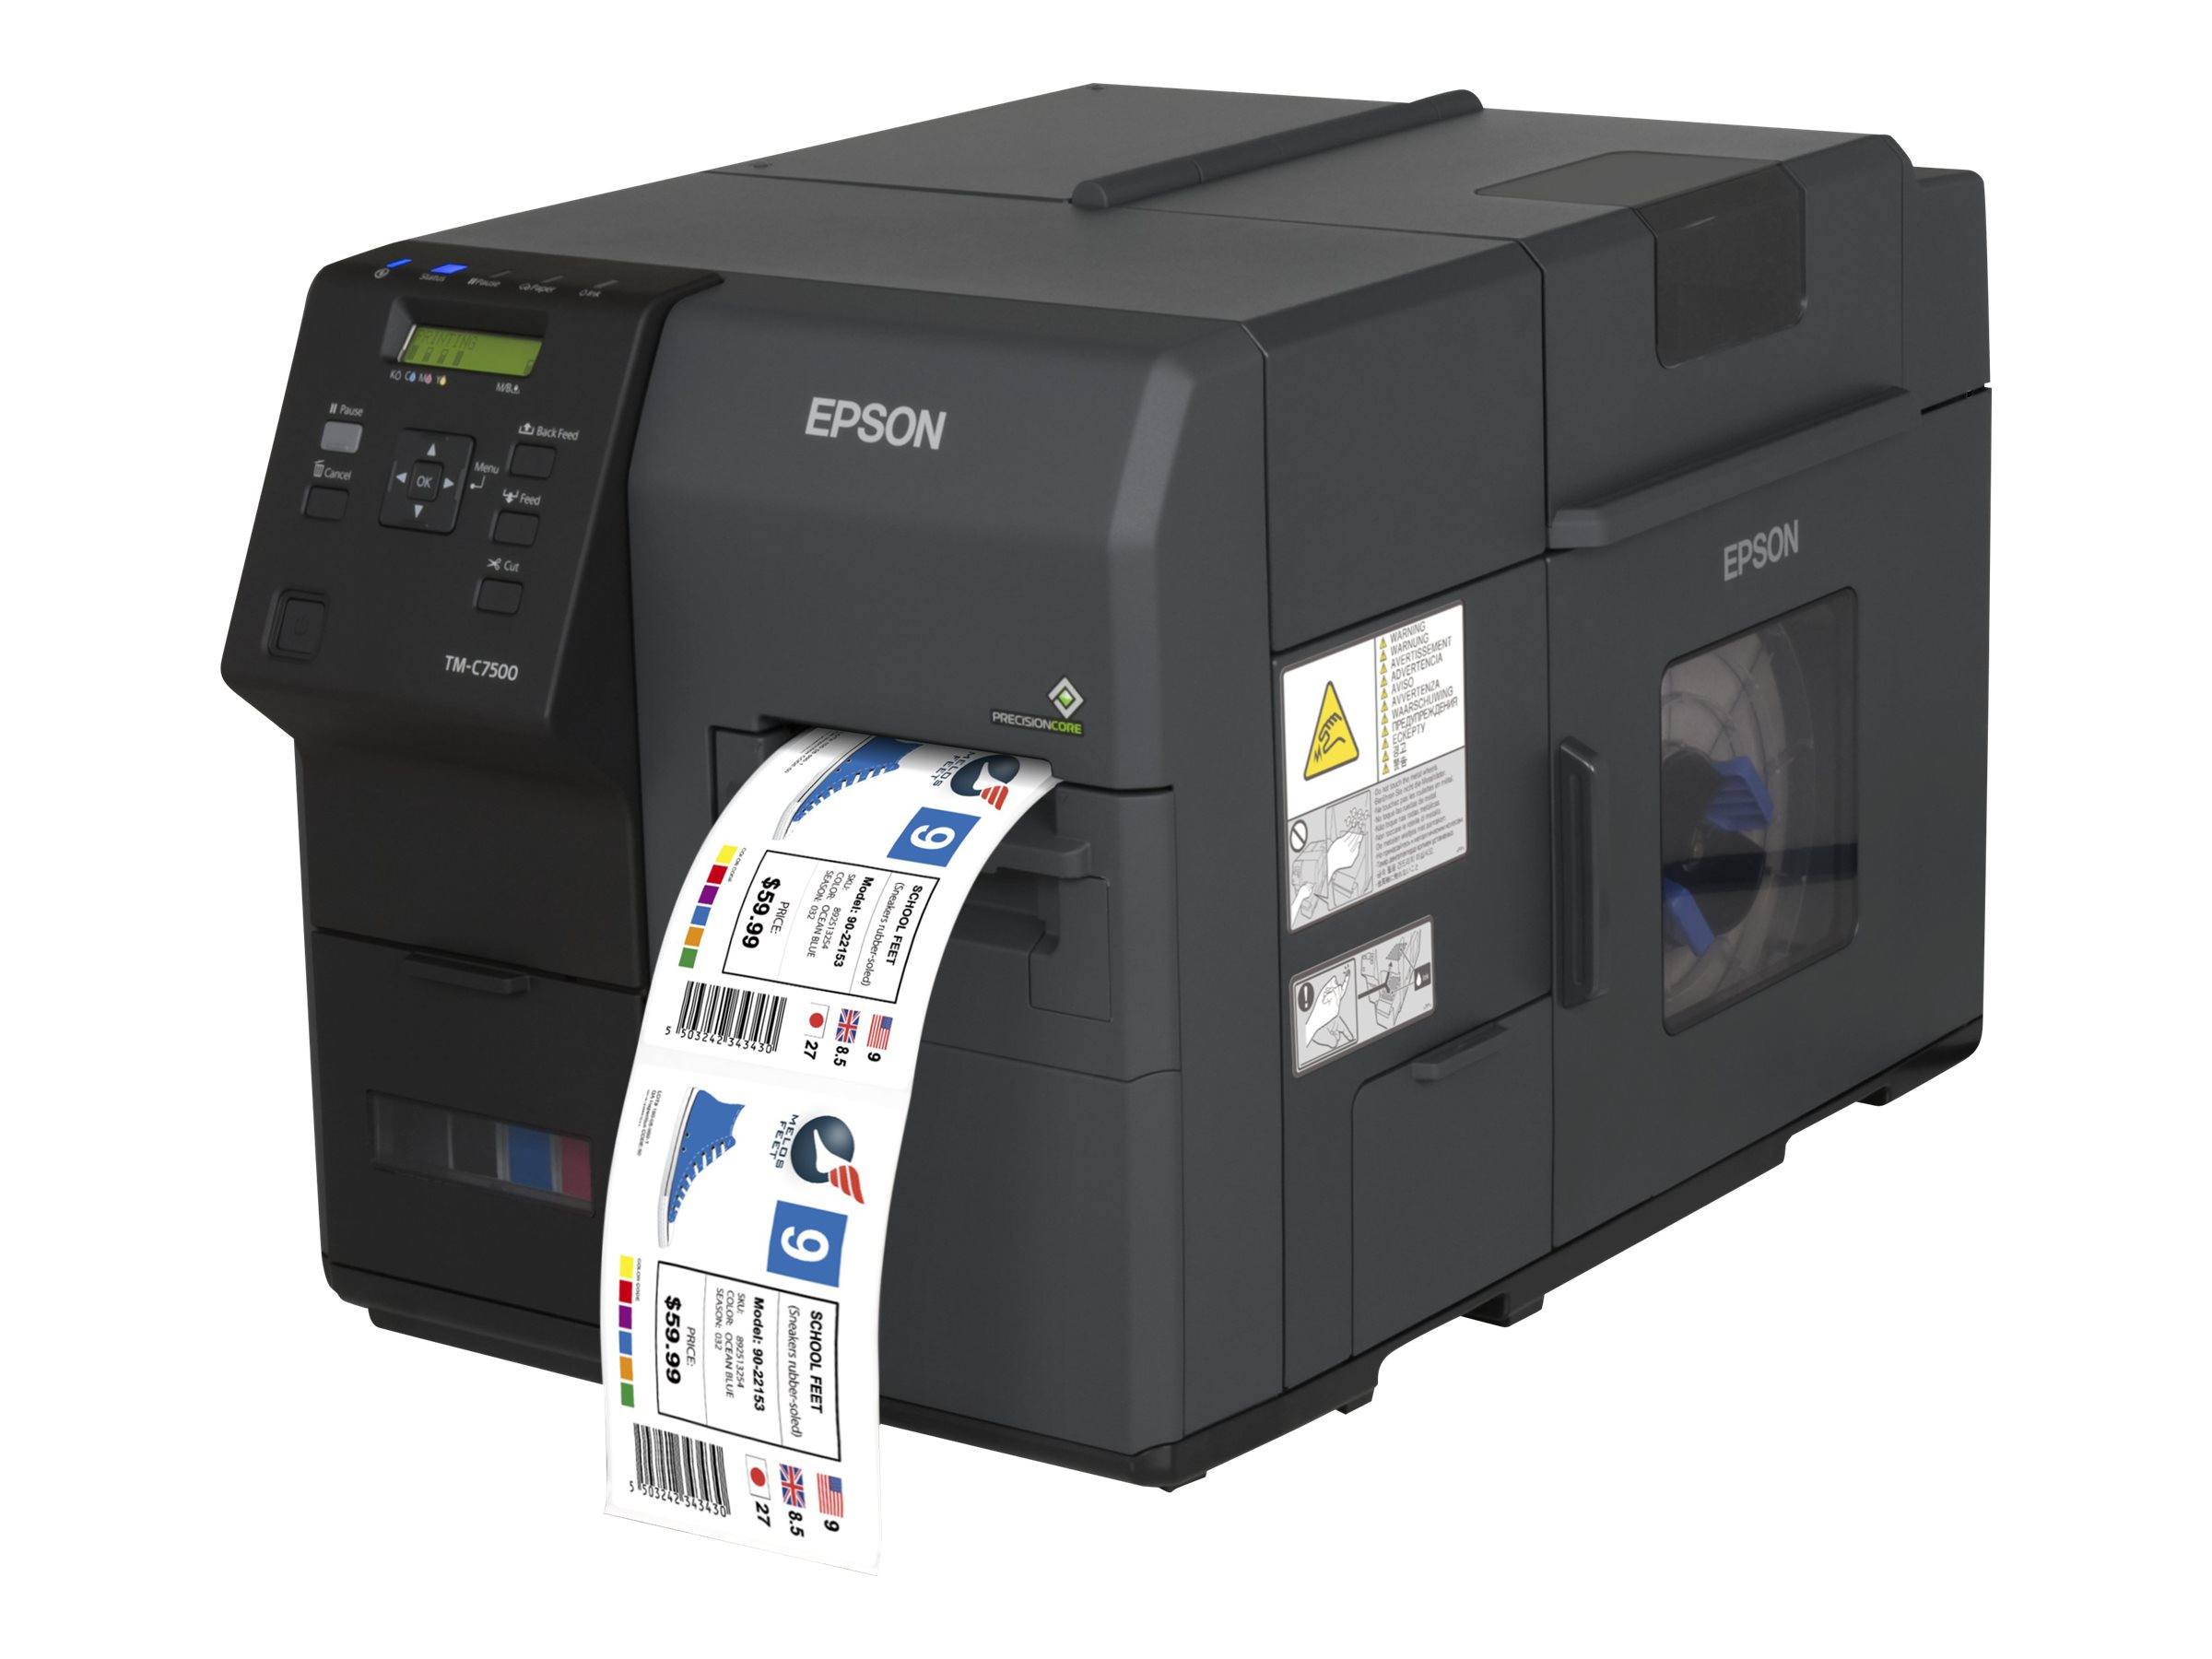 Epson ColorWorks C7500, Cutter, Disp., USB, Ethernet, schwarz, C31CD84012